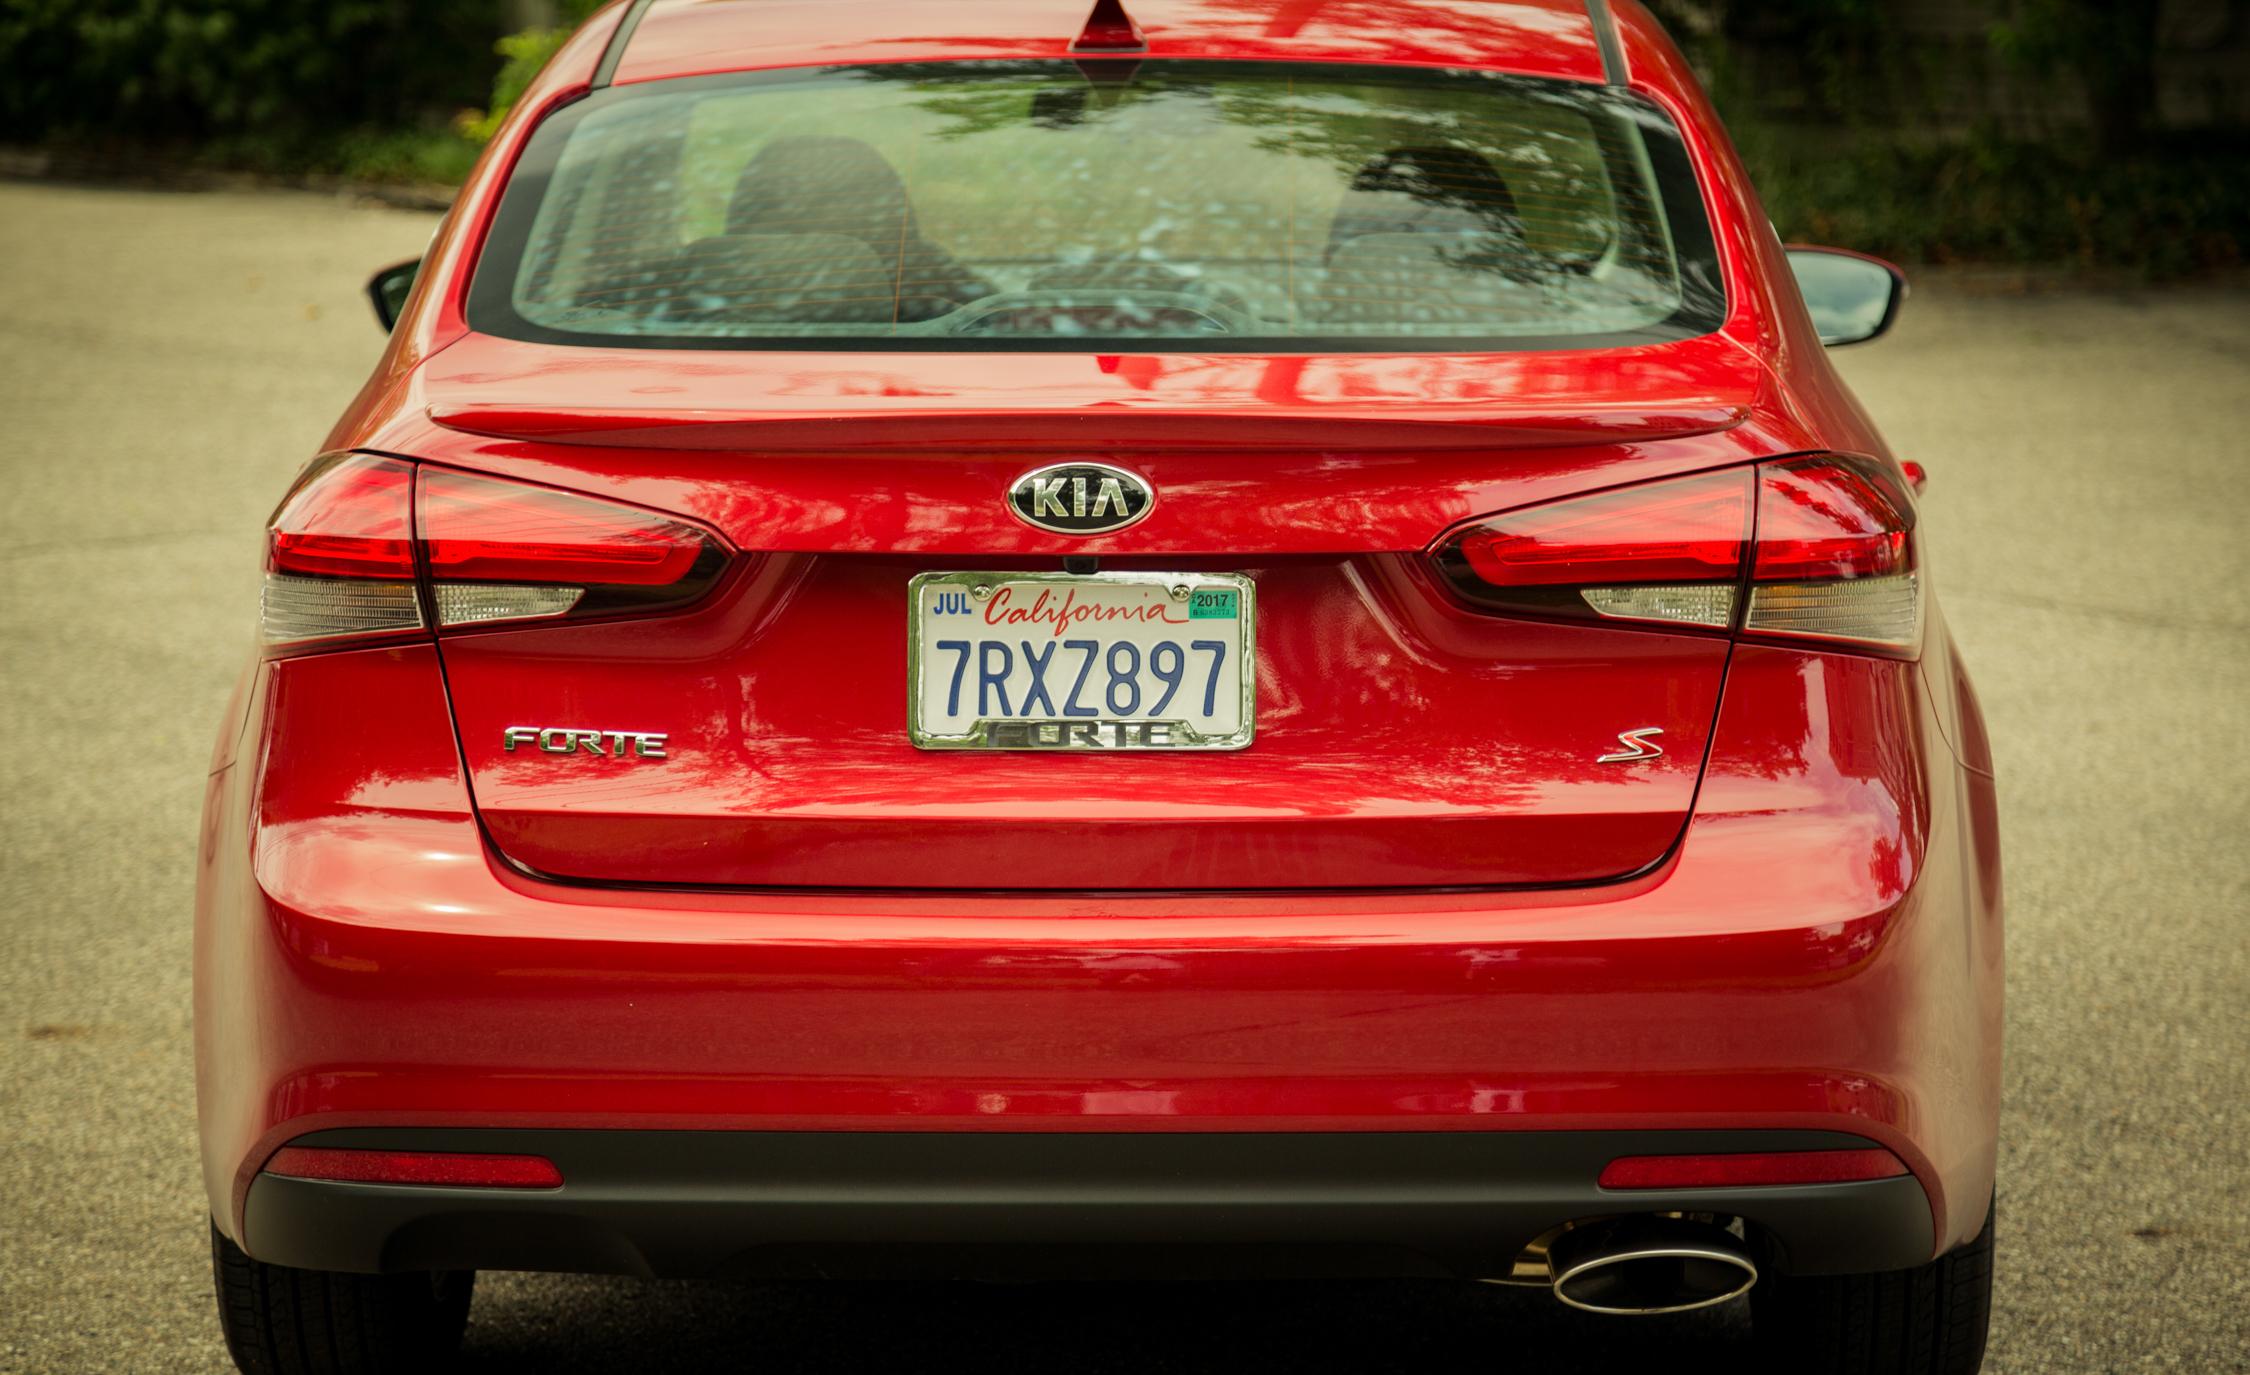 2017 Kia Forte Exterior Rear End (Photo 6 of 13)